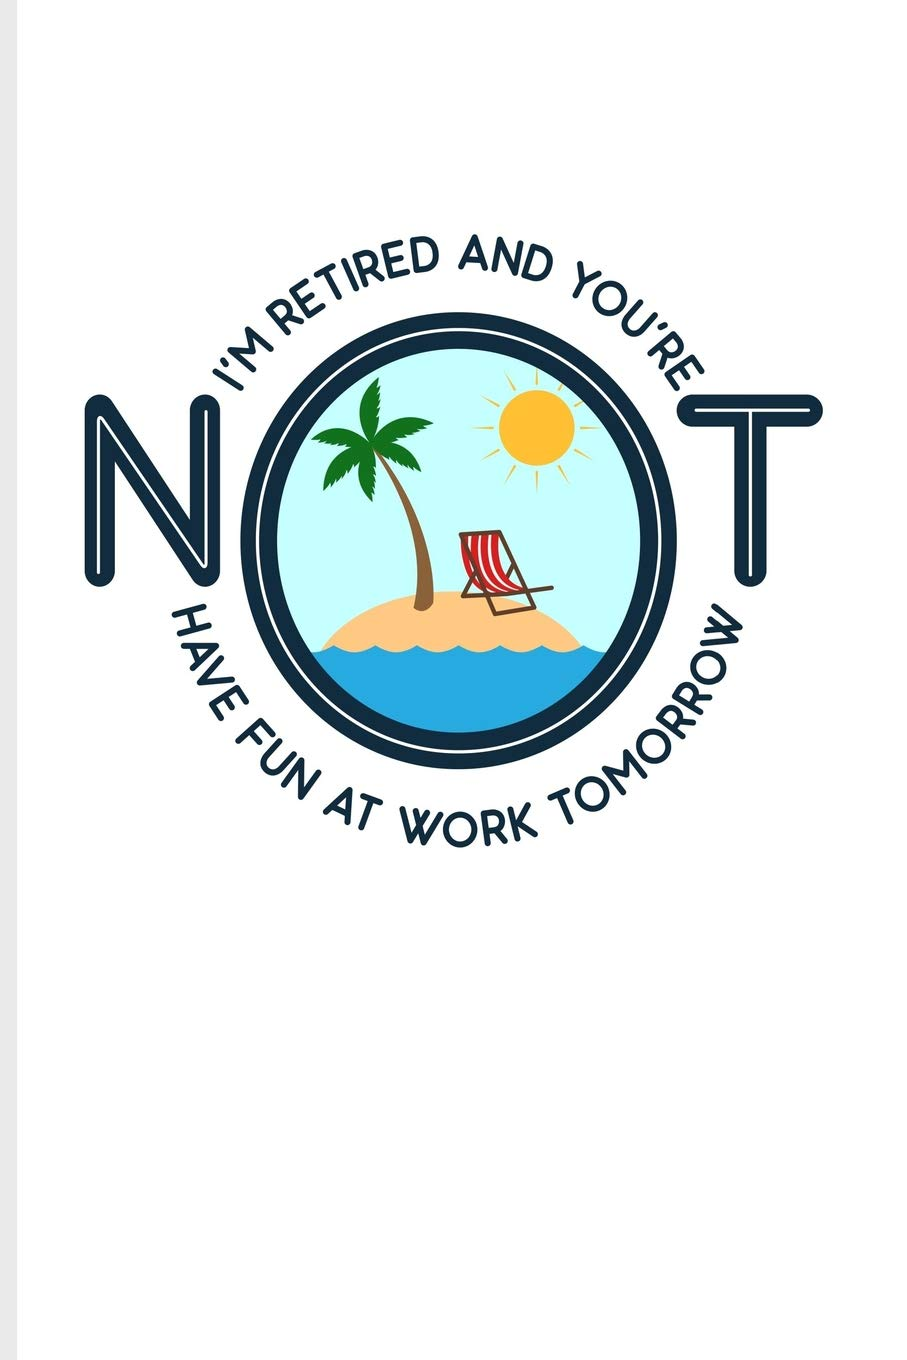 I M Retired And You Re Not Have Fun At Work Tomorrow Funny Retirement Quotes Journal For Retired Military Teacher Doctor Marine Policeman Women Men Pension Fans 6x9 100 Blank Lined